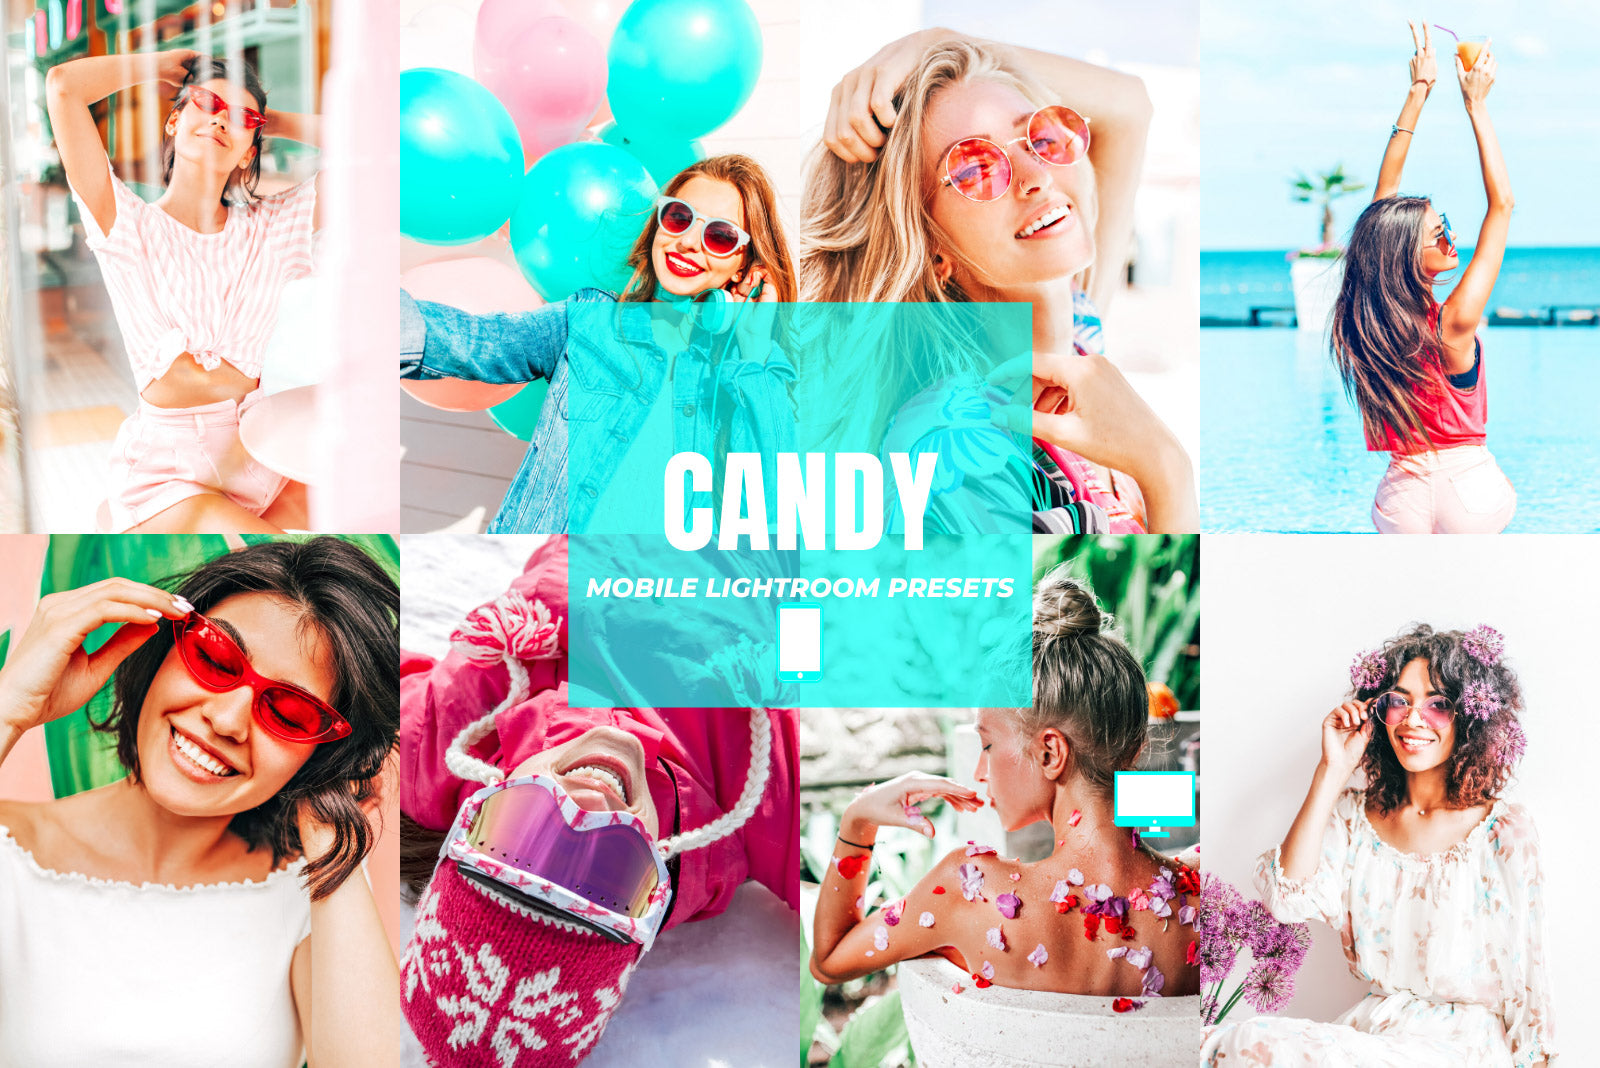 CANDY MOBILE LIGHTROOM PRESETS by The Viral Presets